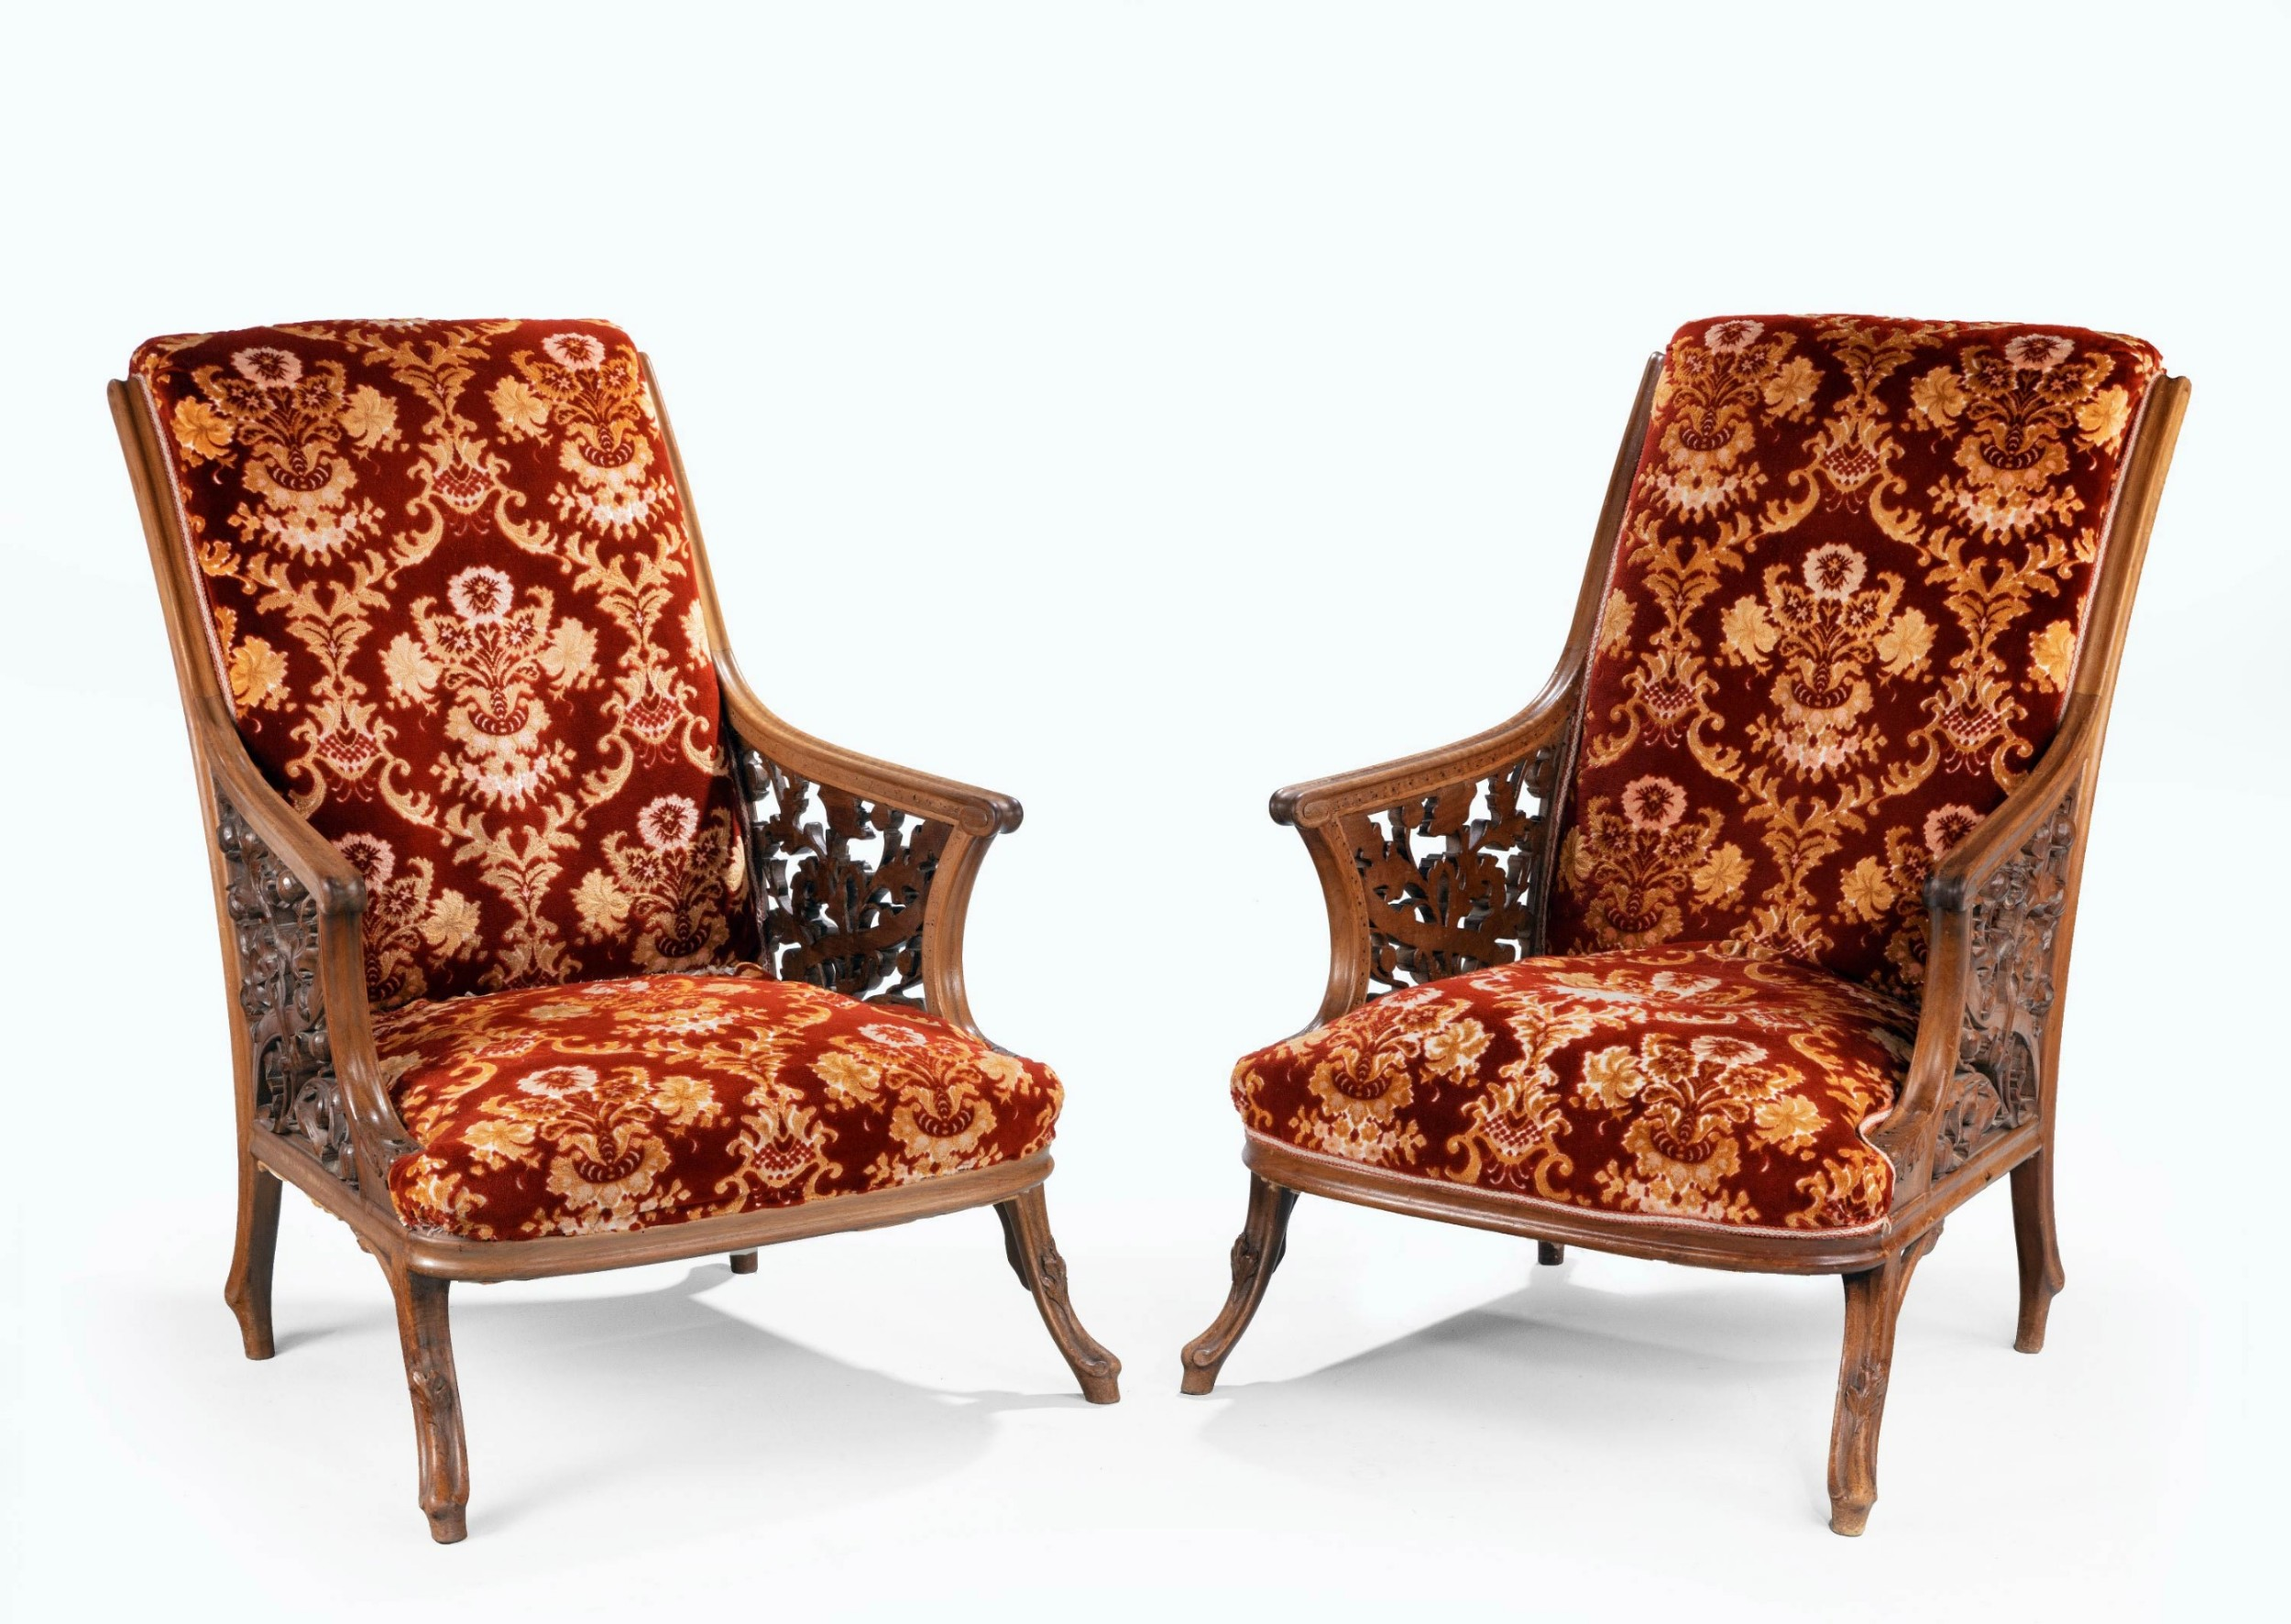 a most unusual and fine pair of 19th century mahogany framed easy chairs